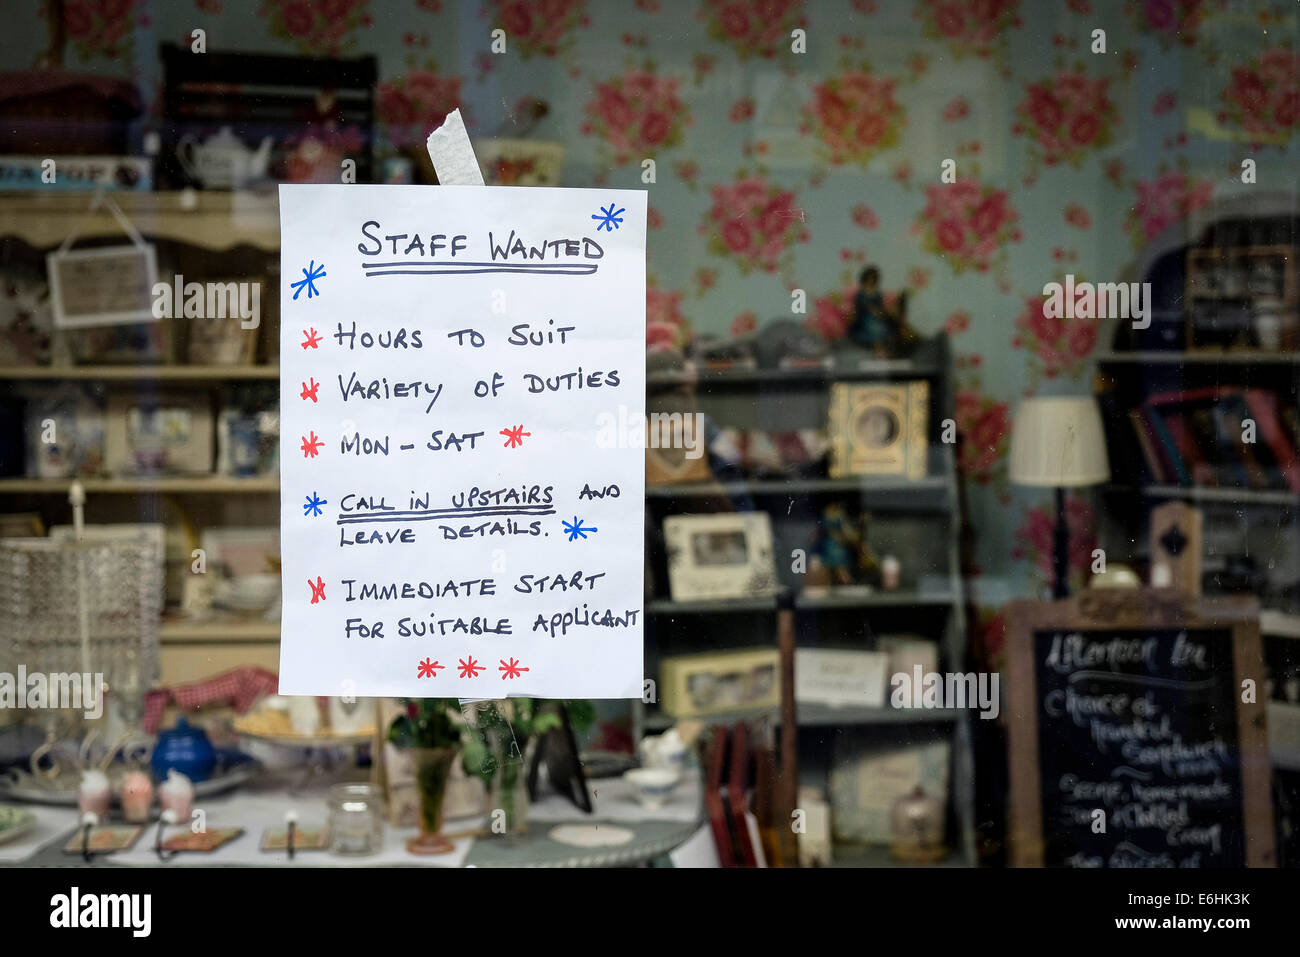 A hand written sign notice in a shop window advertising jobs staff vacancies. - Stock Image